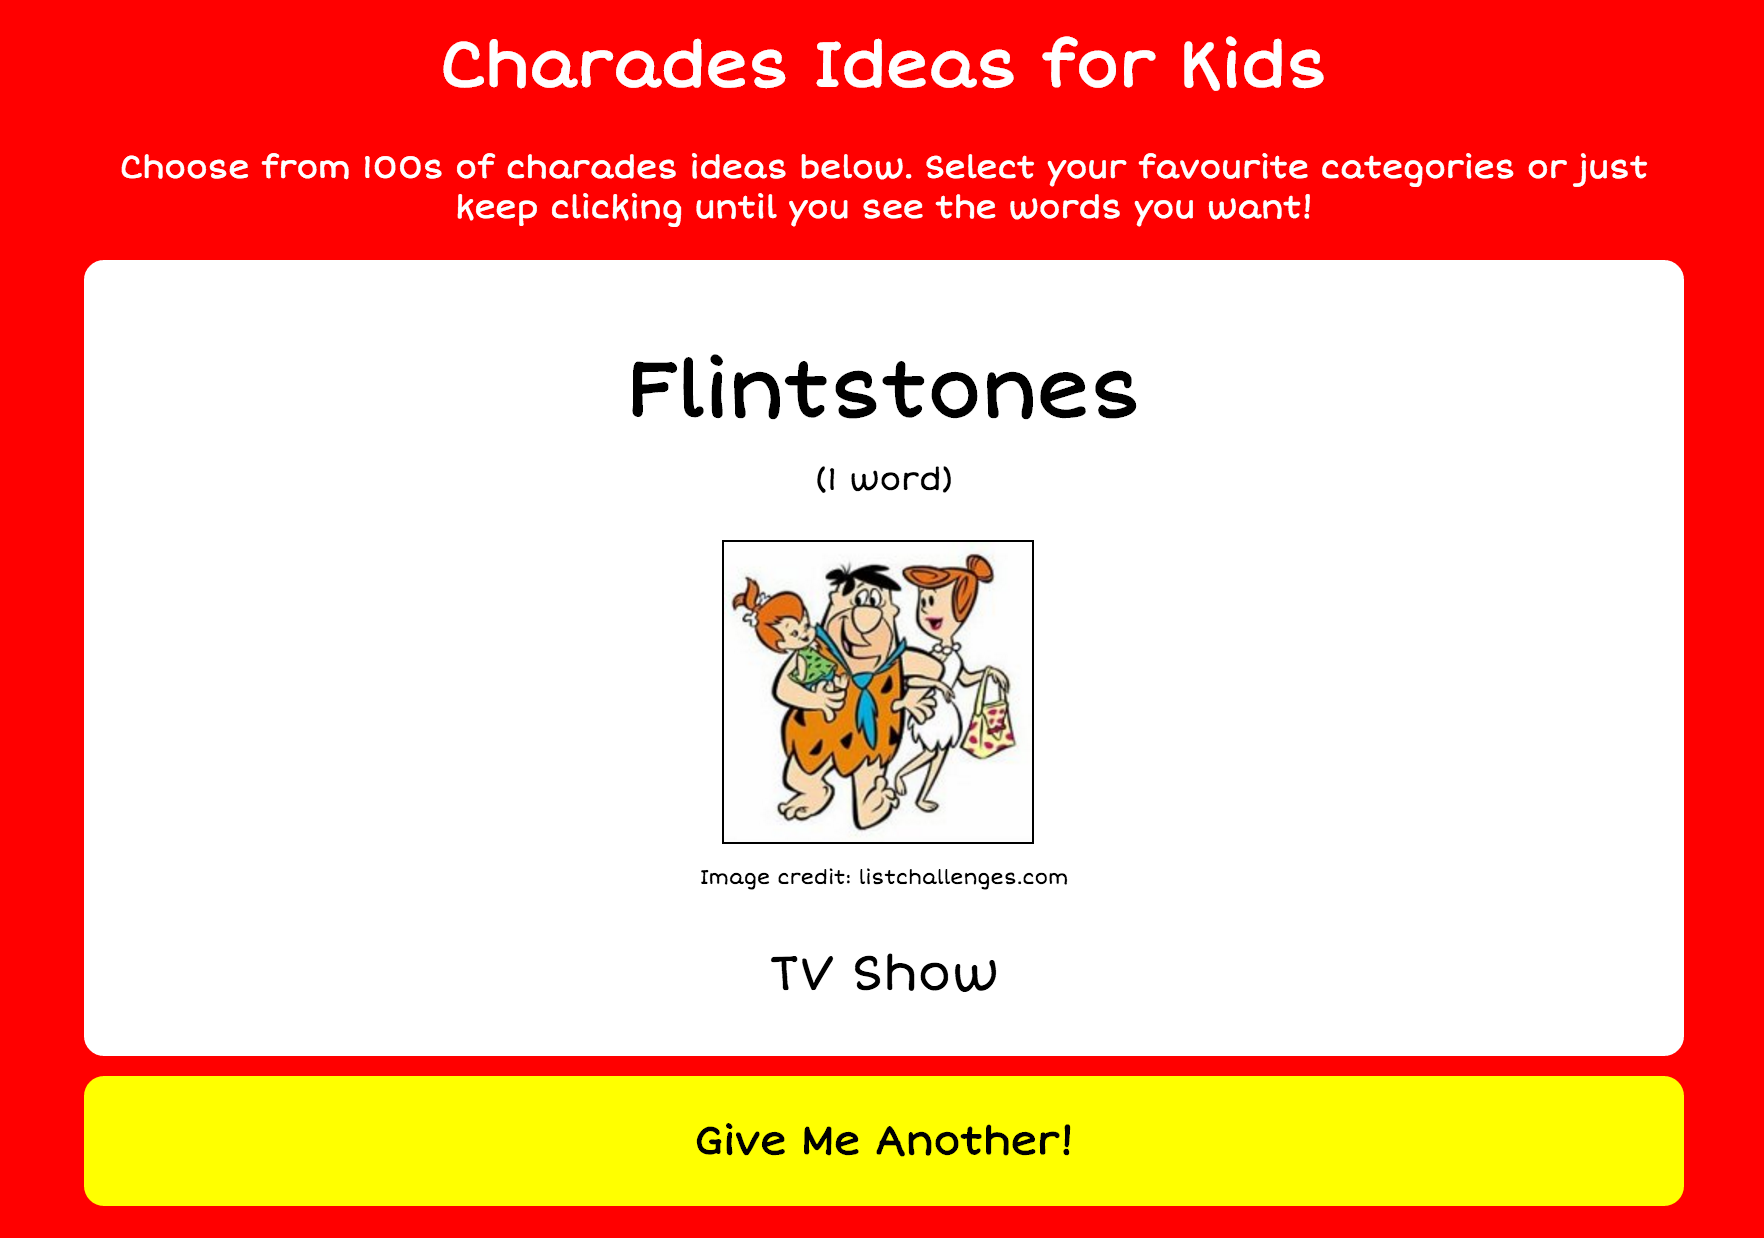 The Flintstones love a good game of family charades!